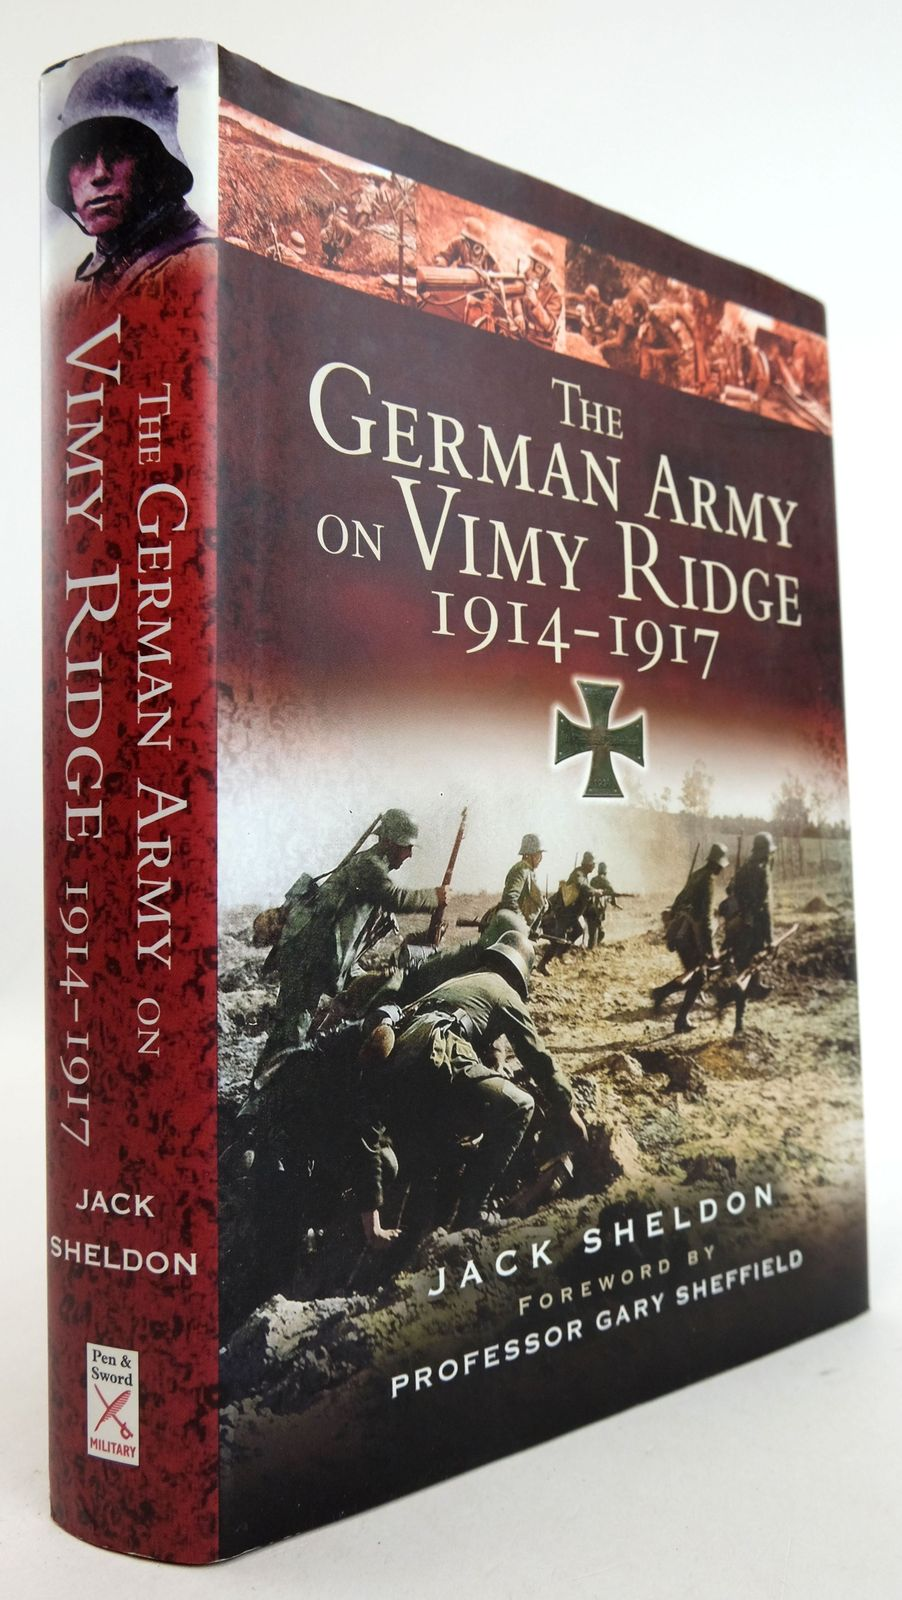 Photo of THE GERMAN ARMY ON VIMY RIDGE 1914-1917 written by Sheldon, Jack published by Pen & Sword Military (STOCK CODE: 1819532)  for sale by Stella & Rose's Books